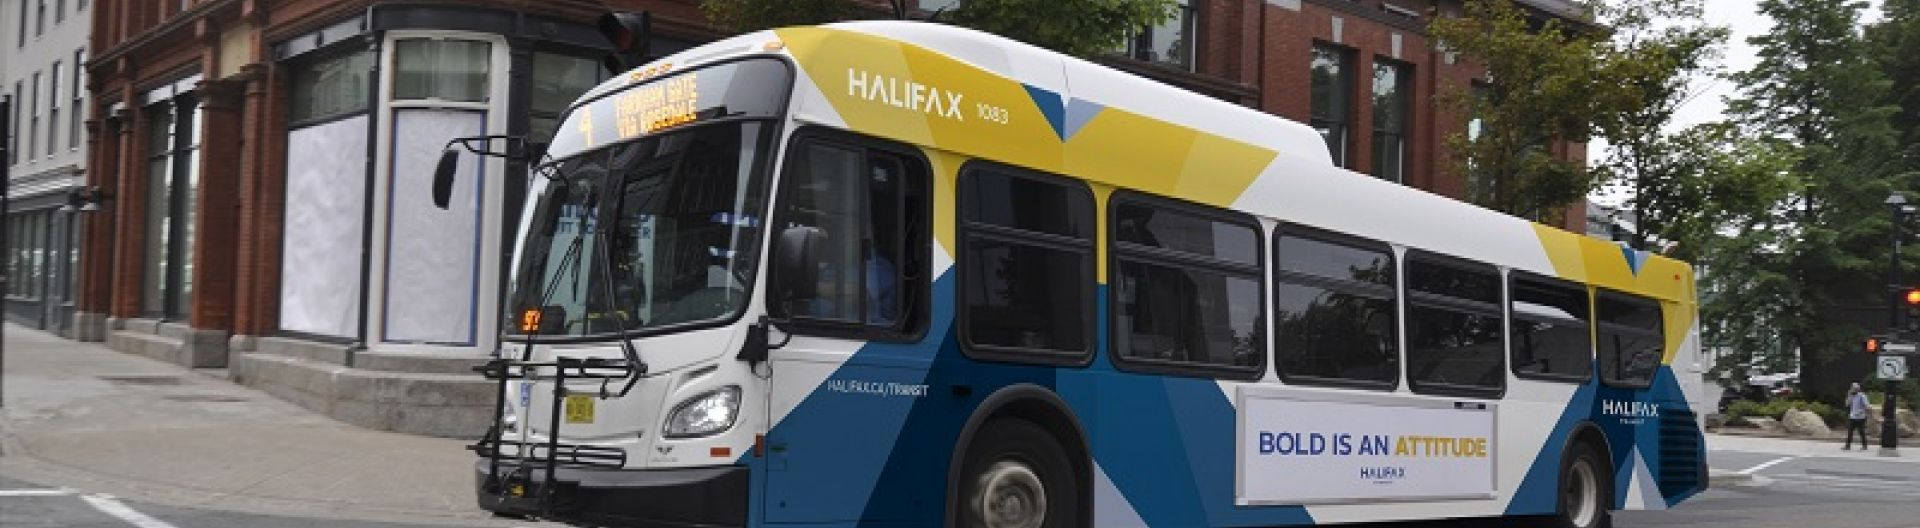 routes | schedules | halifax transit | halifax